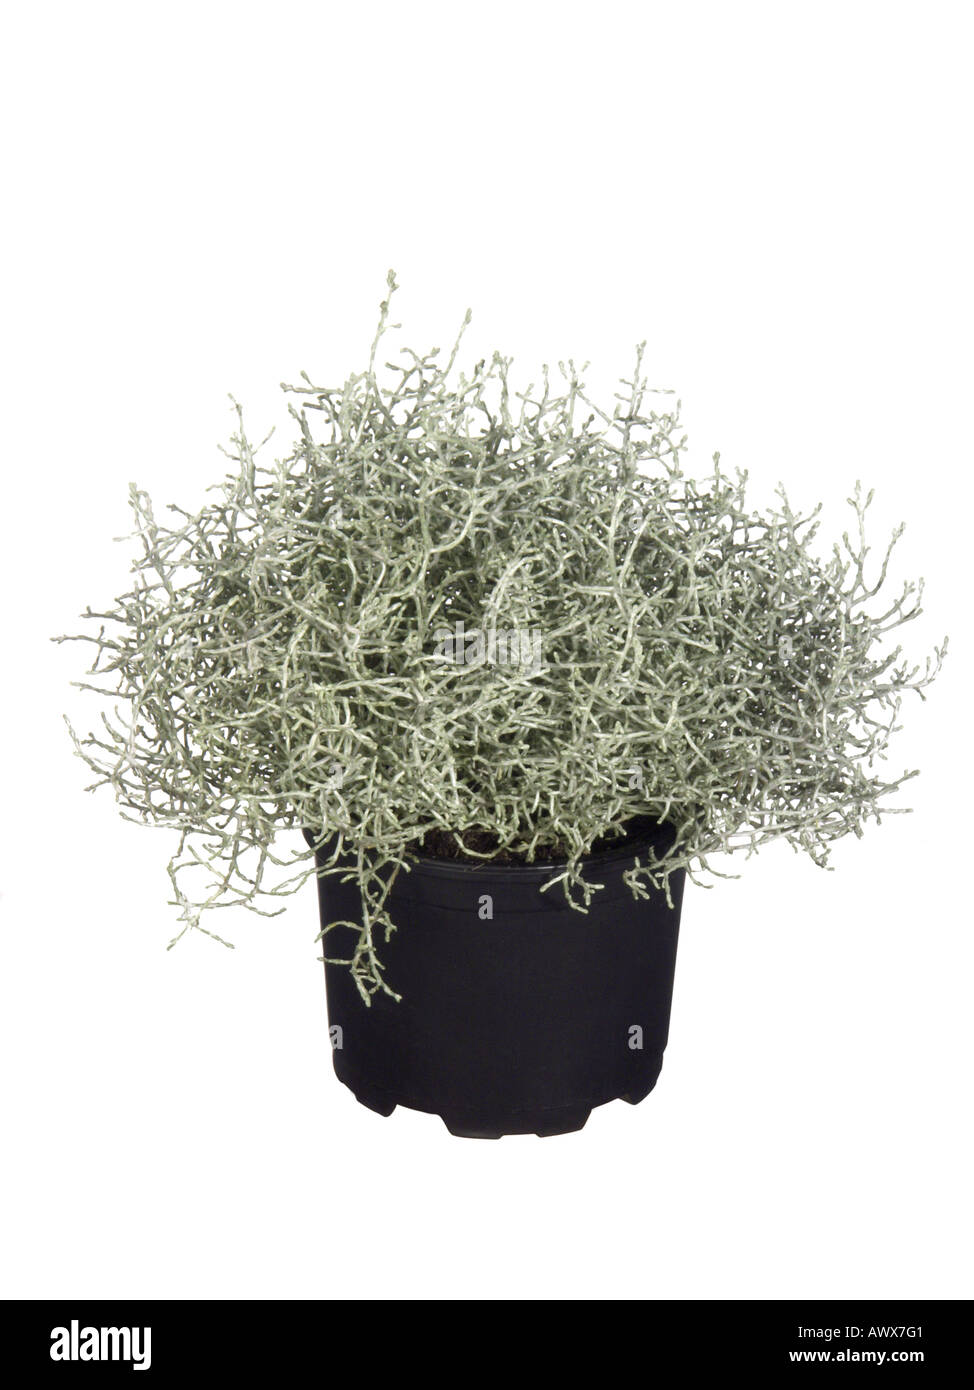 Silver wire netting plant cushion bush calocephalus